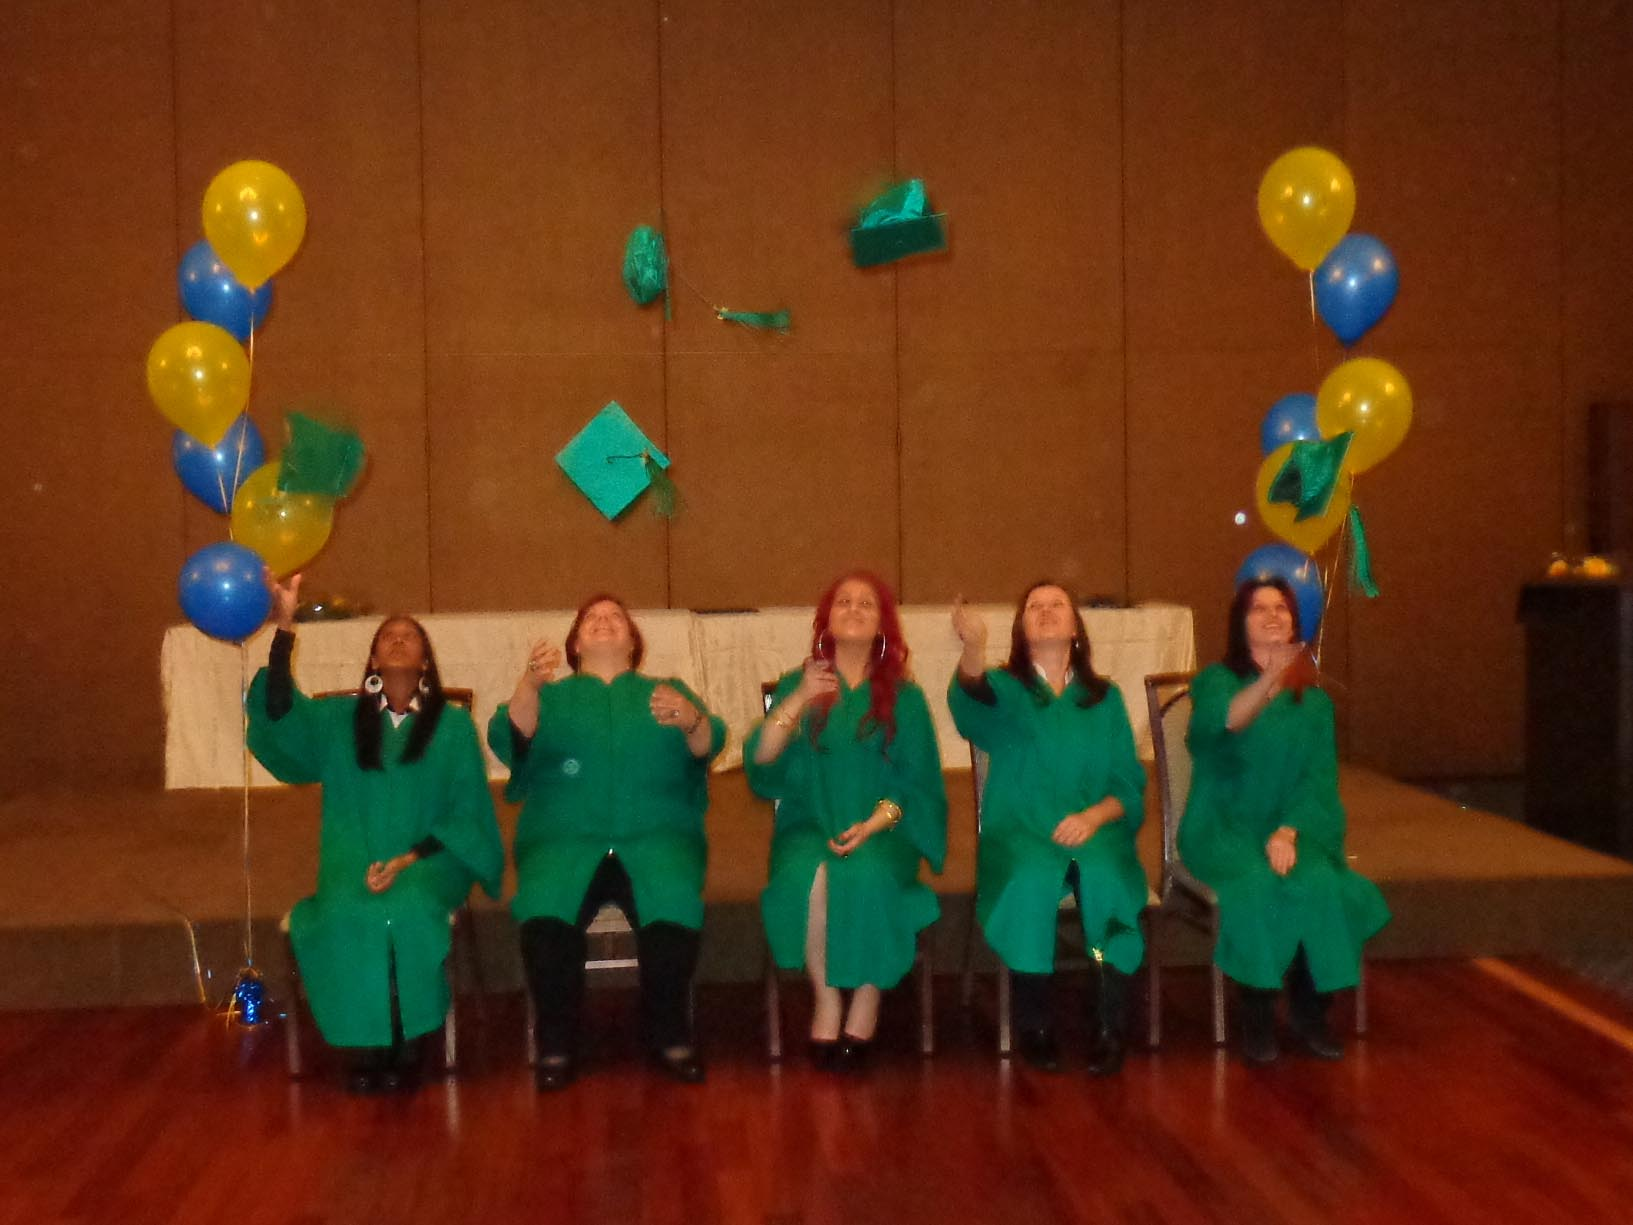 Toronto College of Dental Hygiene Graduation Ceremony 4